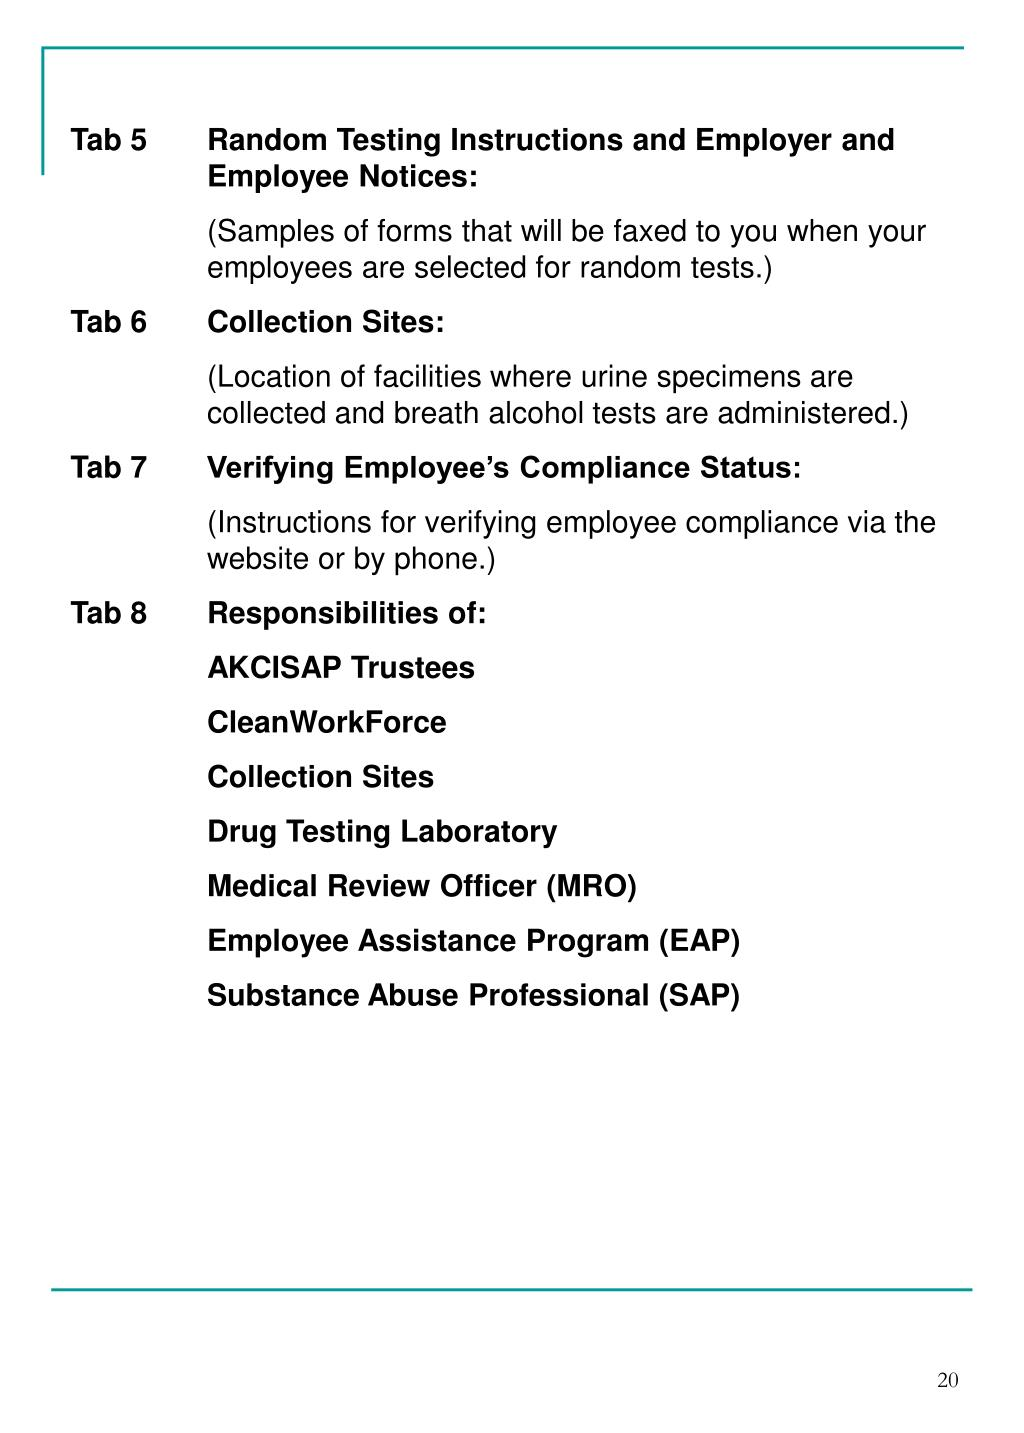 Tab 5Random Testing Instructions and Employer and Employee Notices: